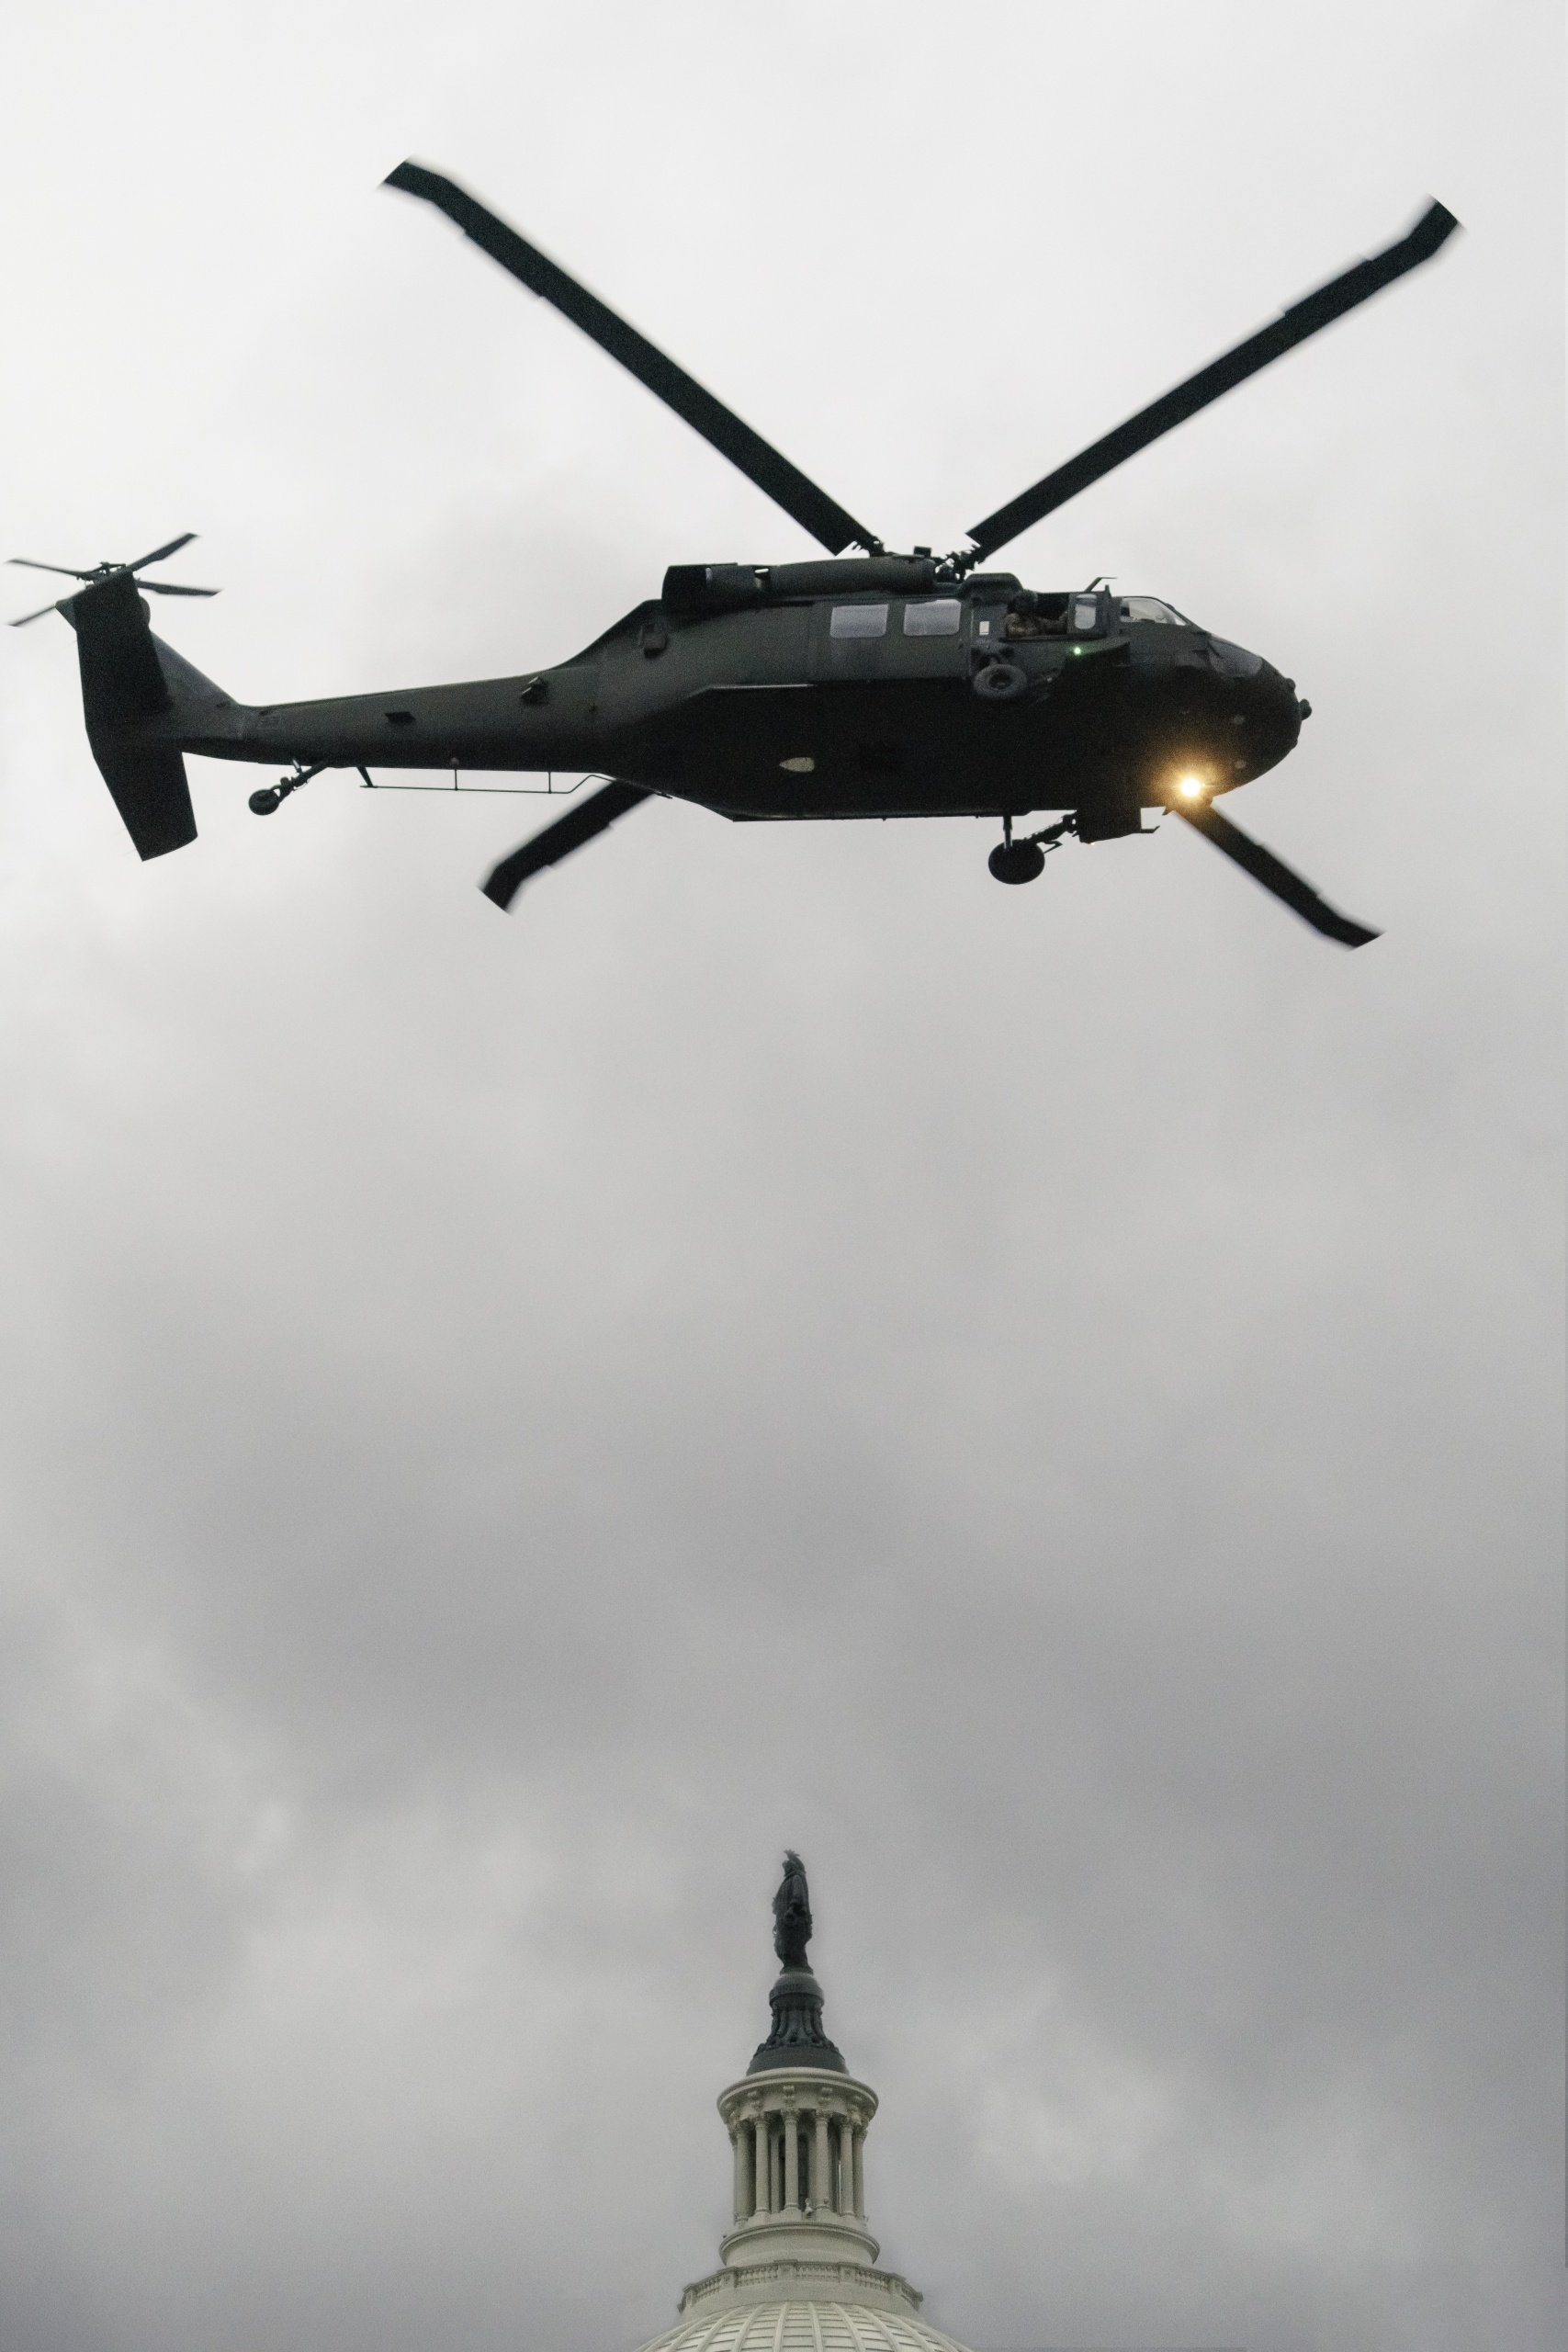 swat, helicopter, helicopters over dc, us capitol, washington dc, black helicopter